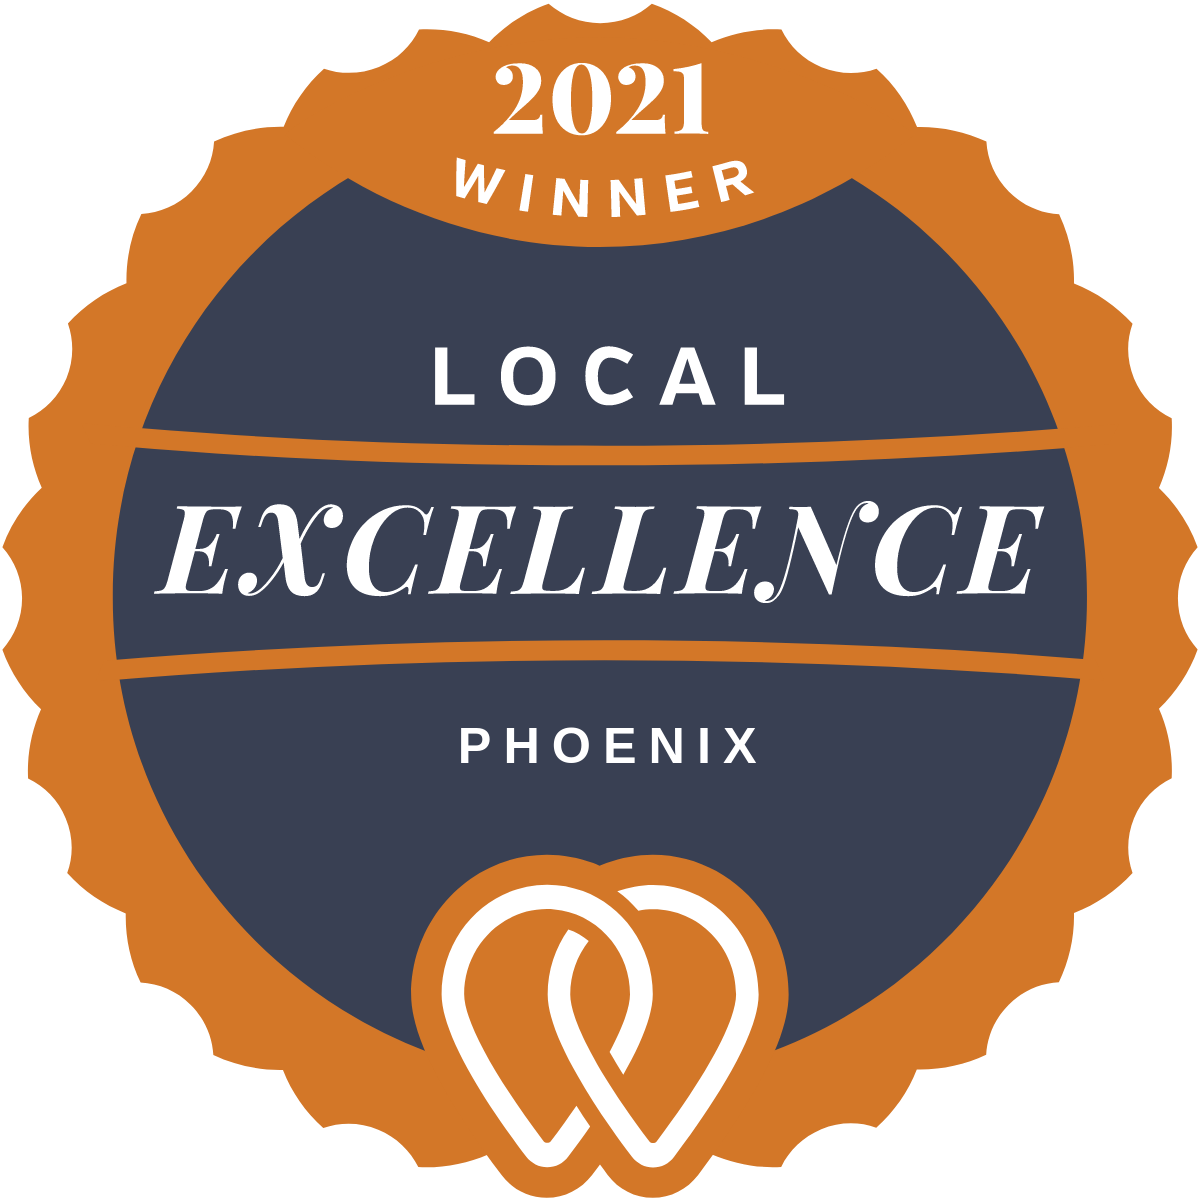 2021 Local Excellence Winner in Phoenix, AZ